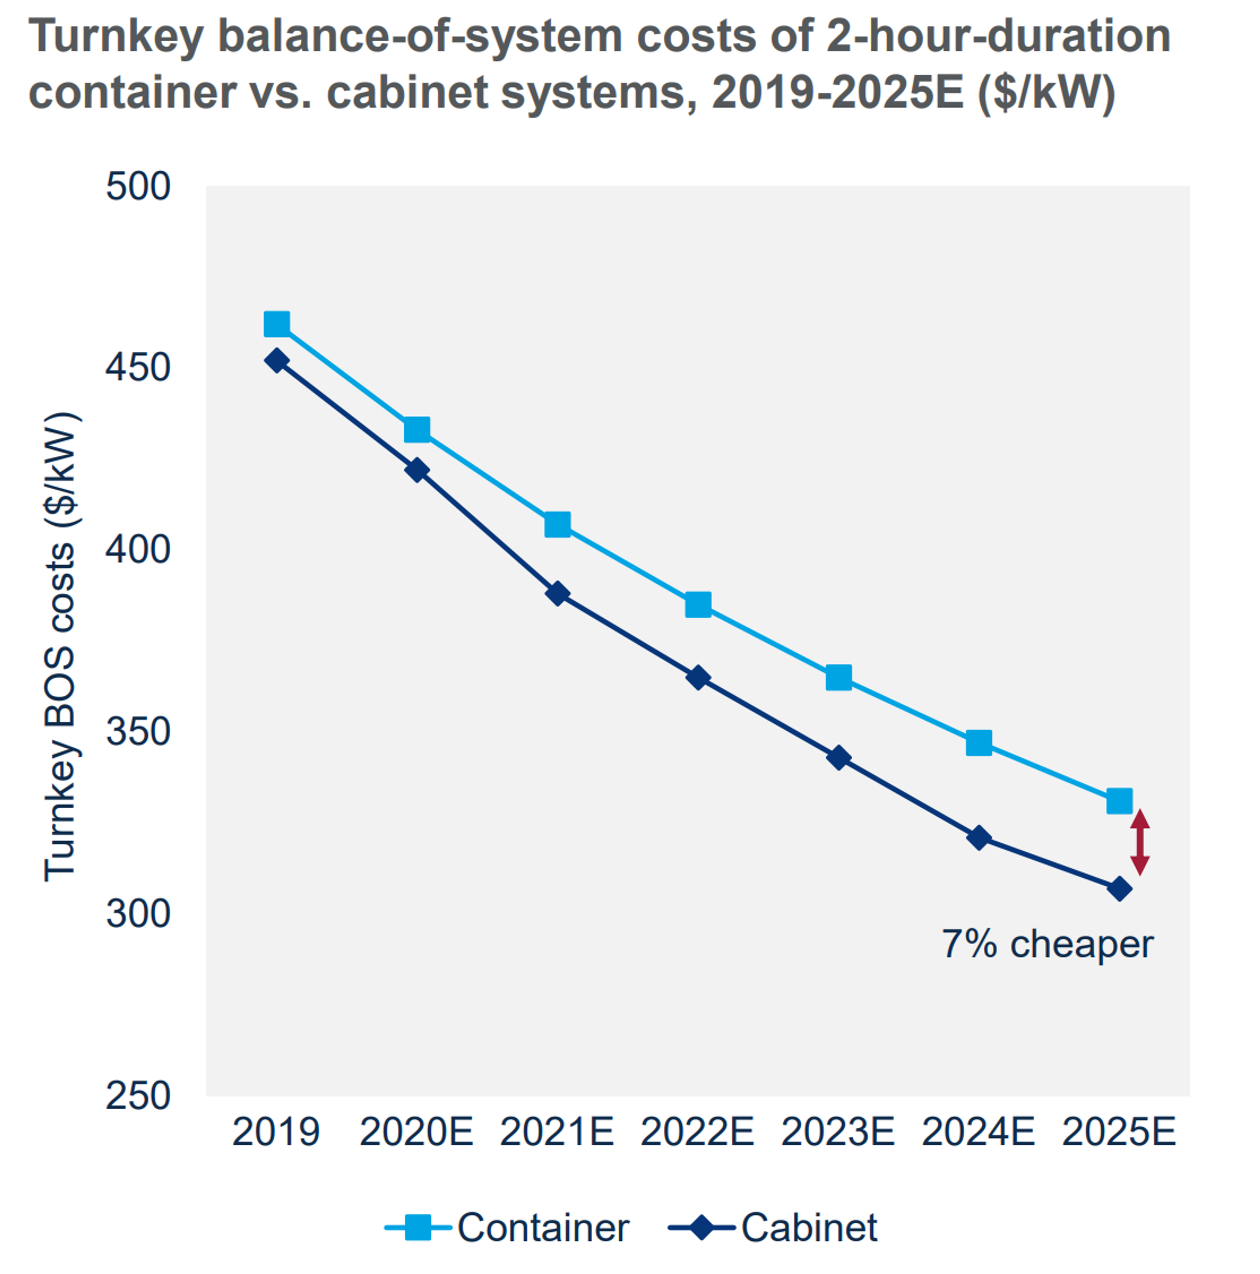 Turnkey BOS costs of 2 hour duration container vs. cabinet systems, 2019-2025E